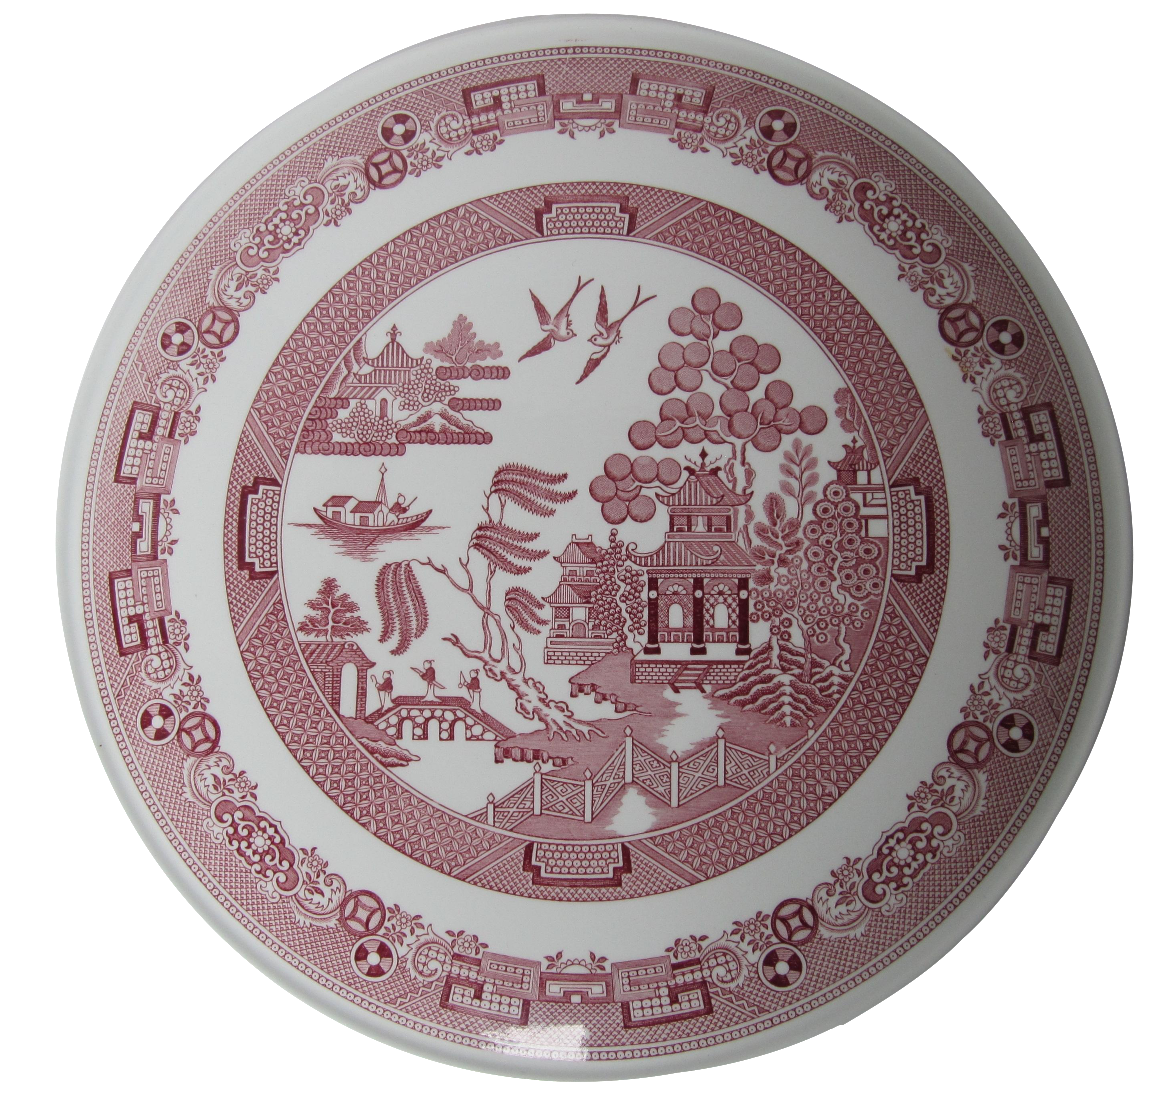 sc 1 st  Chairish & Spode Cranberry Willow Cake Plate | Chairish